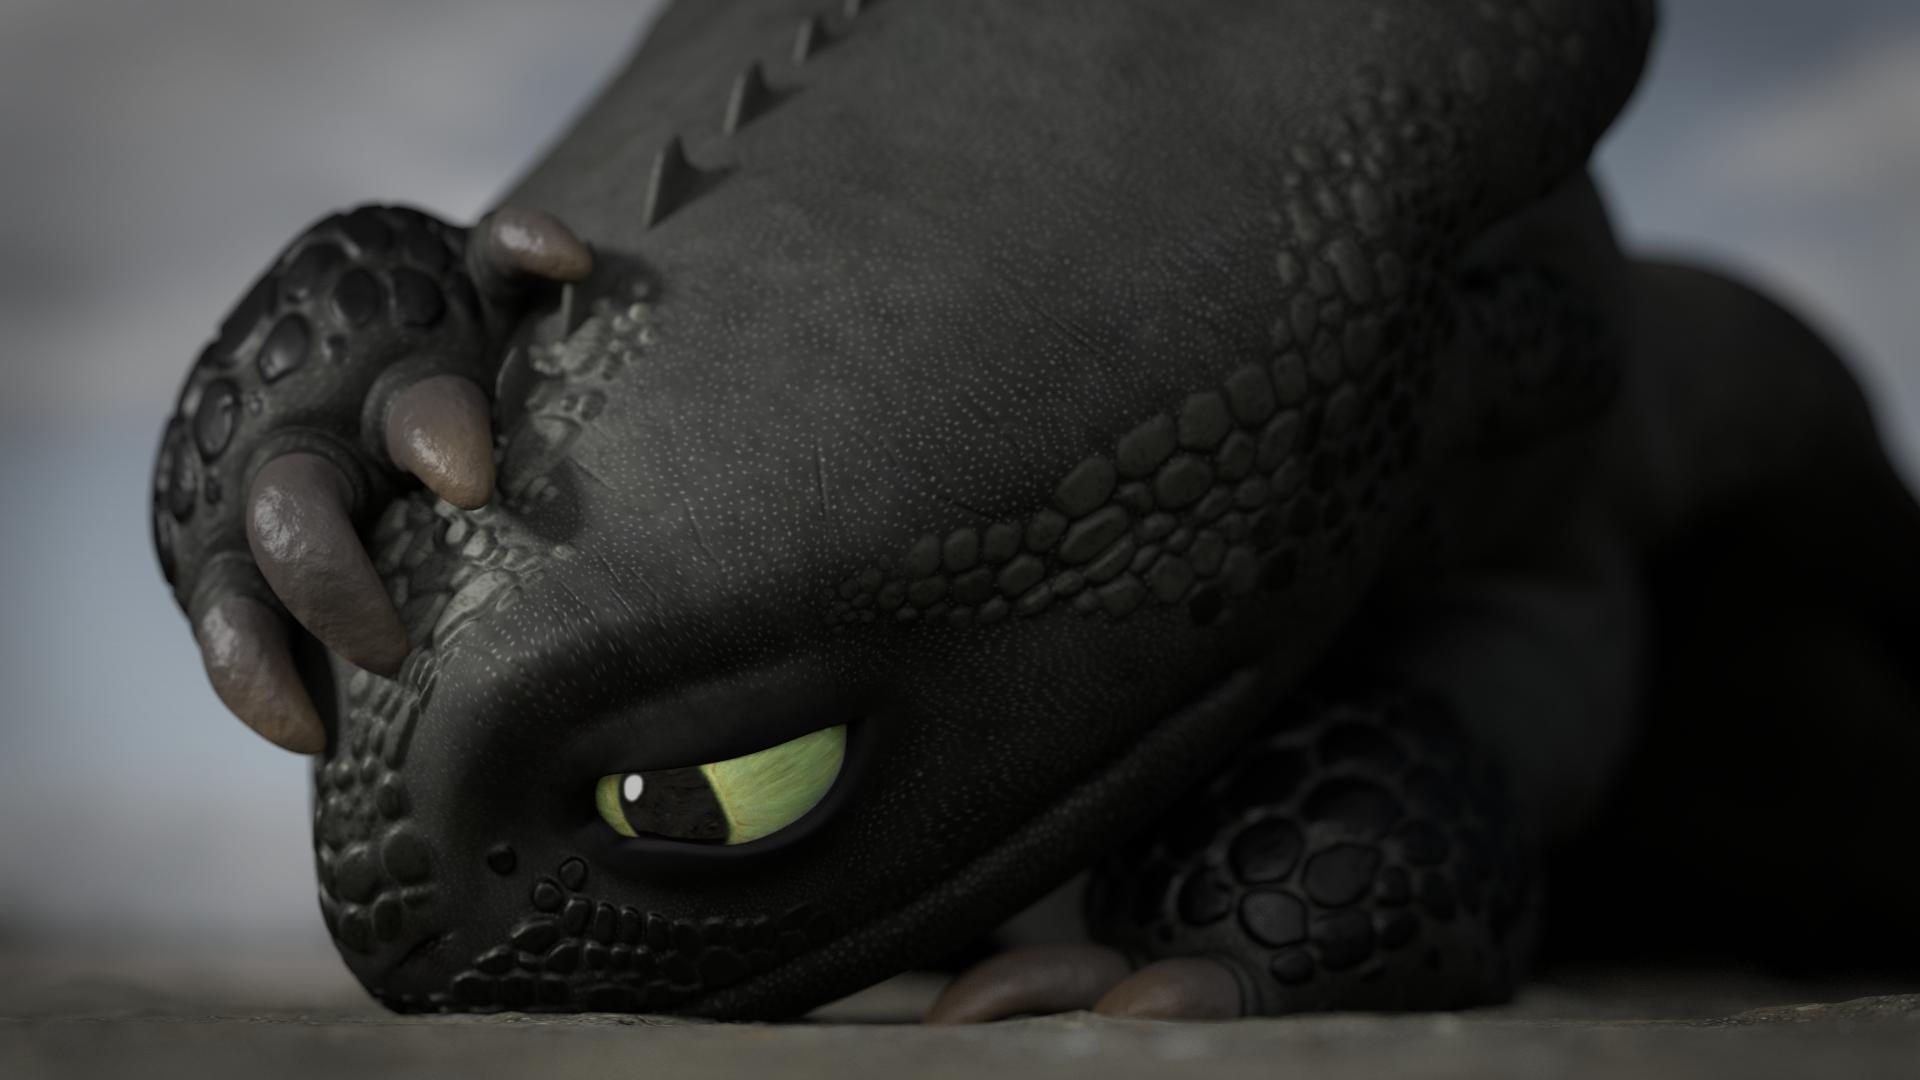 3D model of Toothless, looking overwhelmed and sad